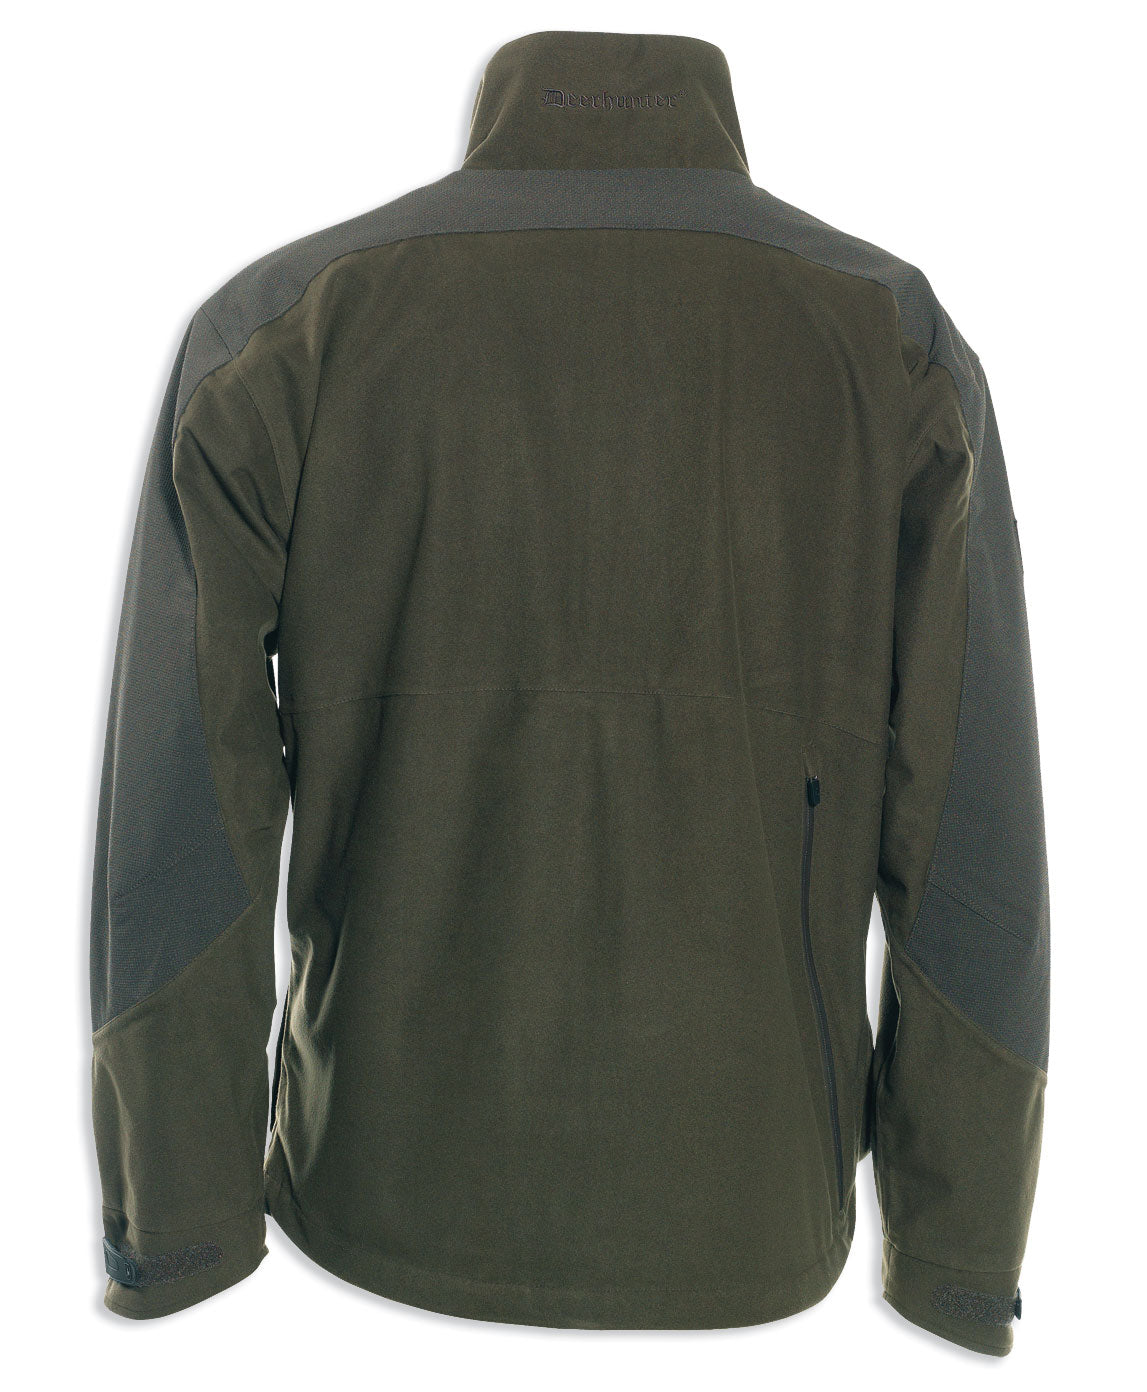 Deerhunter Recon Act Jacket back view